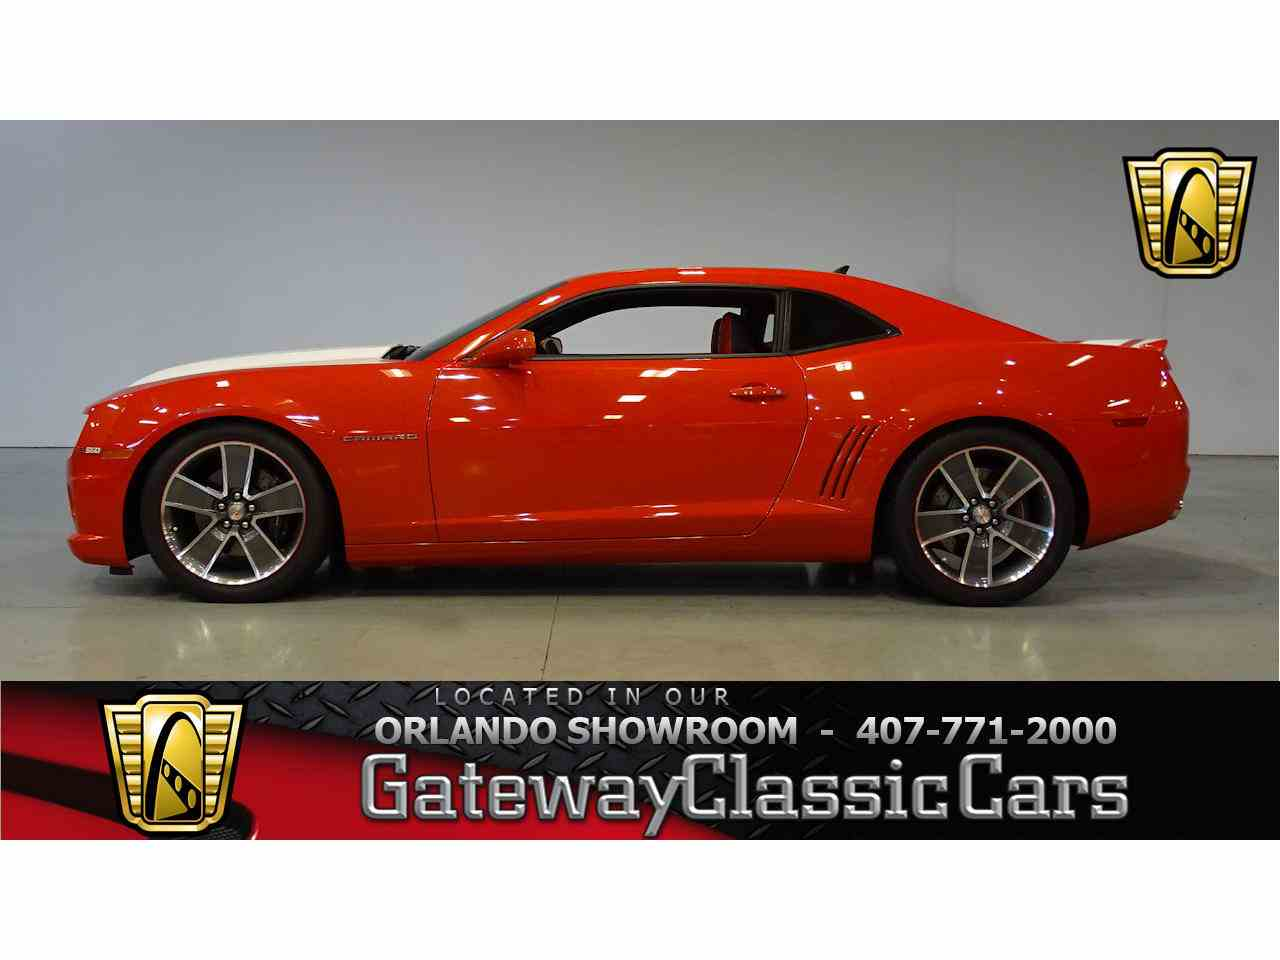 2010 Chevrolet Camaro for Sale - CC-1034137